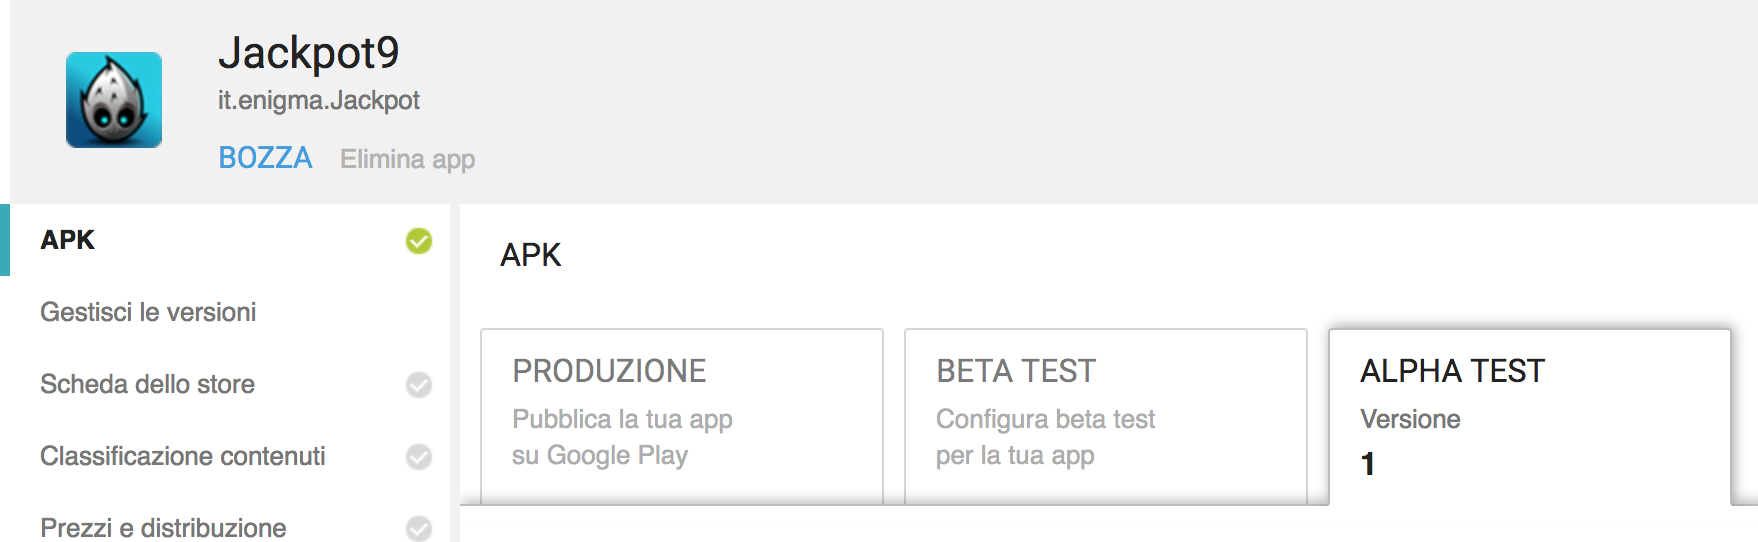 SDKBOX IAP Android not showing prices - SDKBOX - Cocos2d-x ...